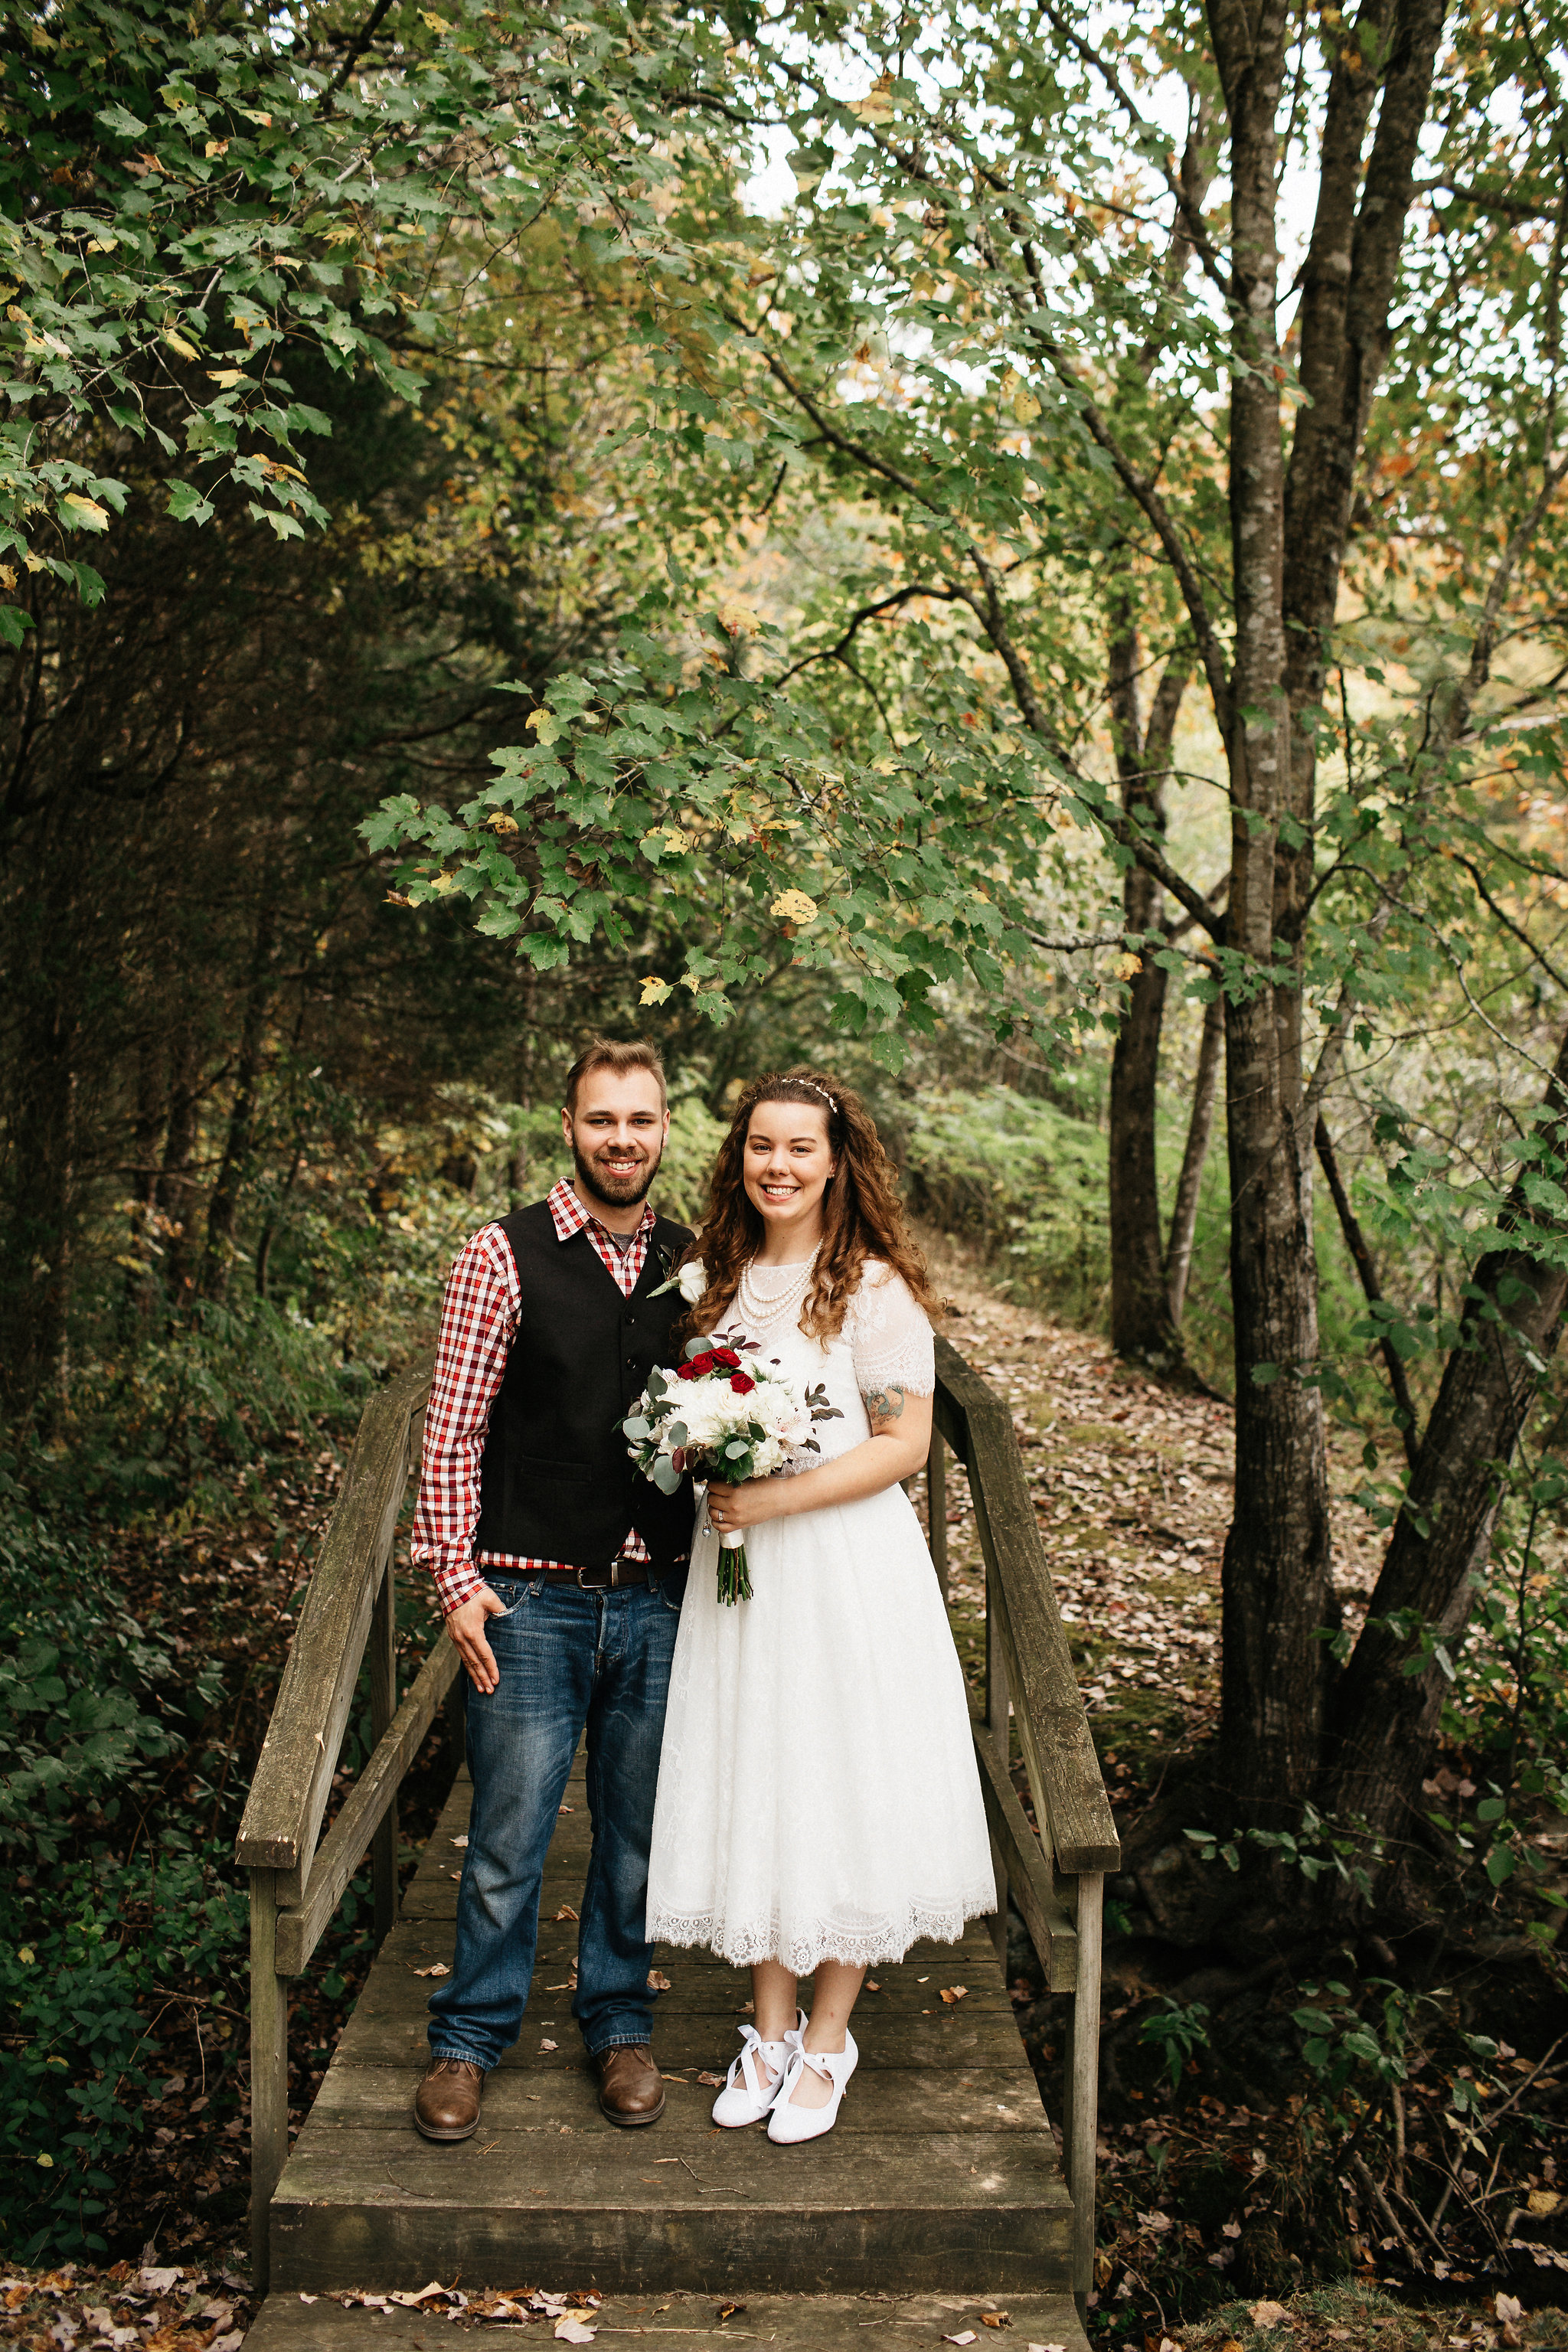 Caitlin&CodyMarried2017-11-03at19.19.39PM110.jpg